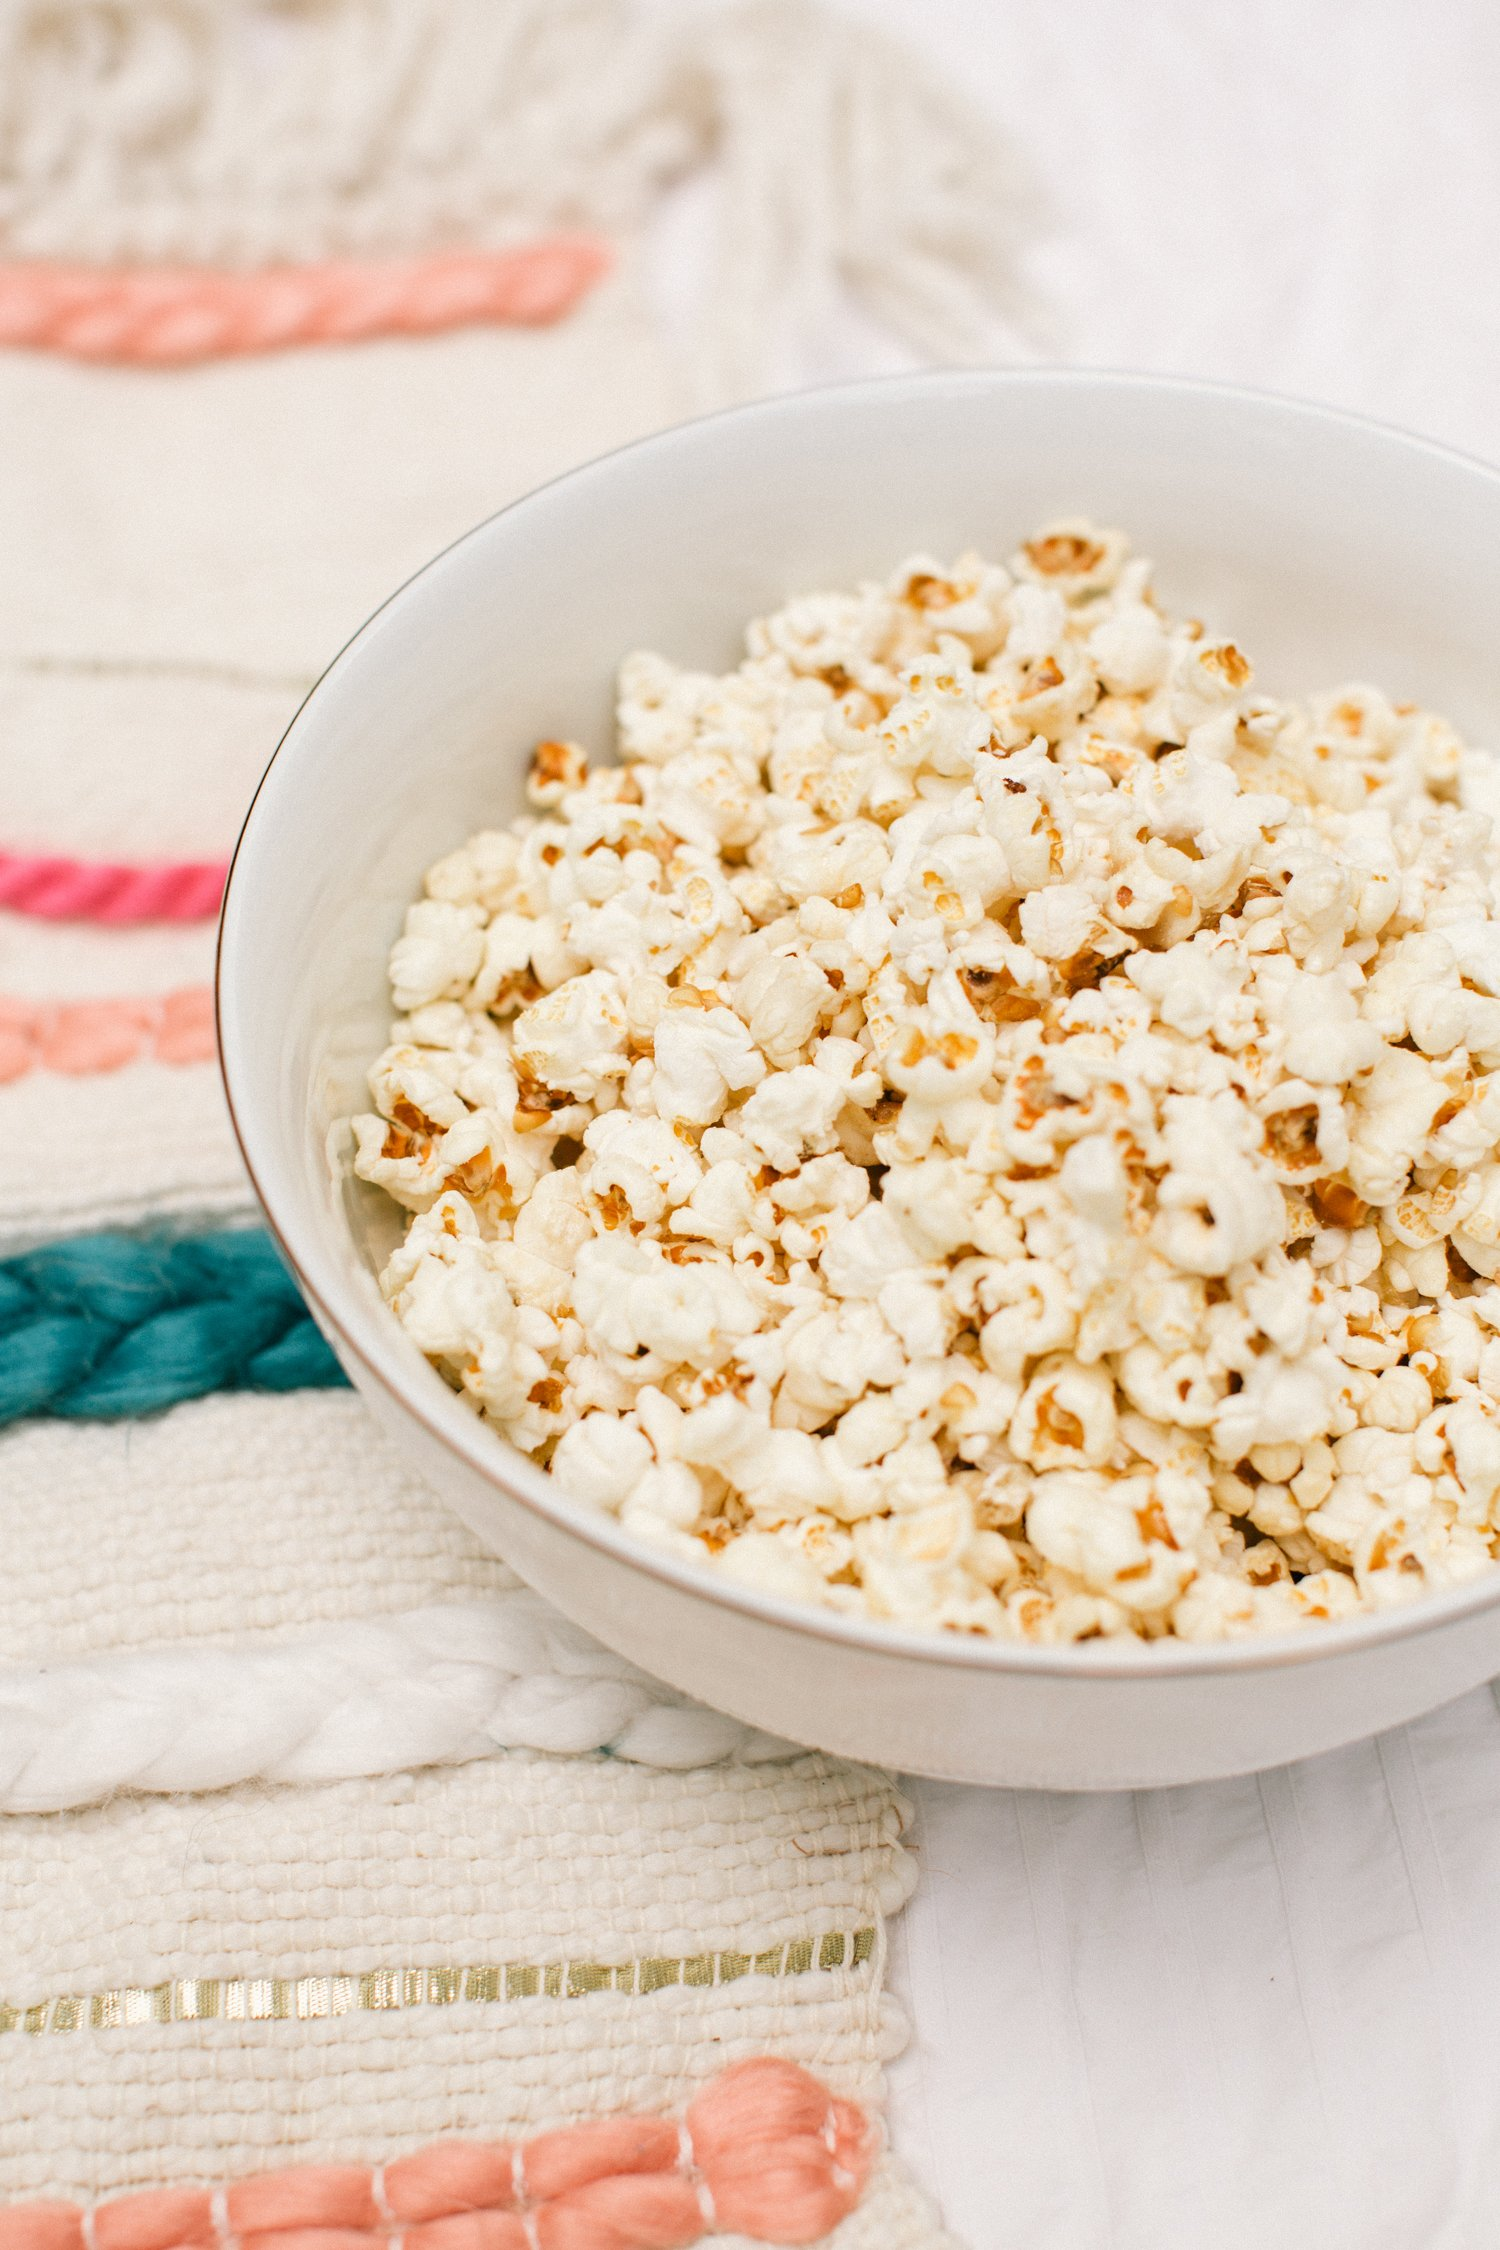 snack ideas for movie date night